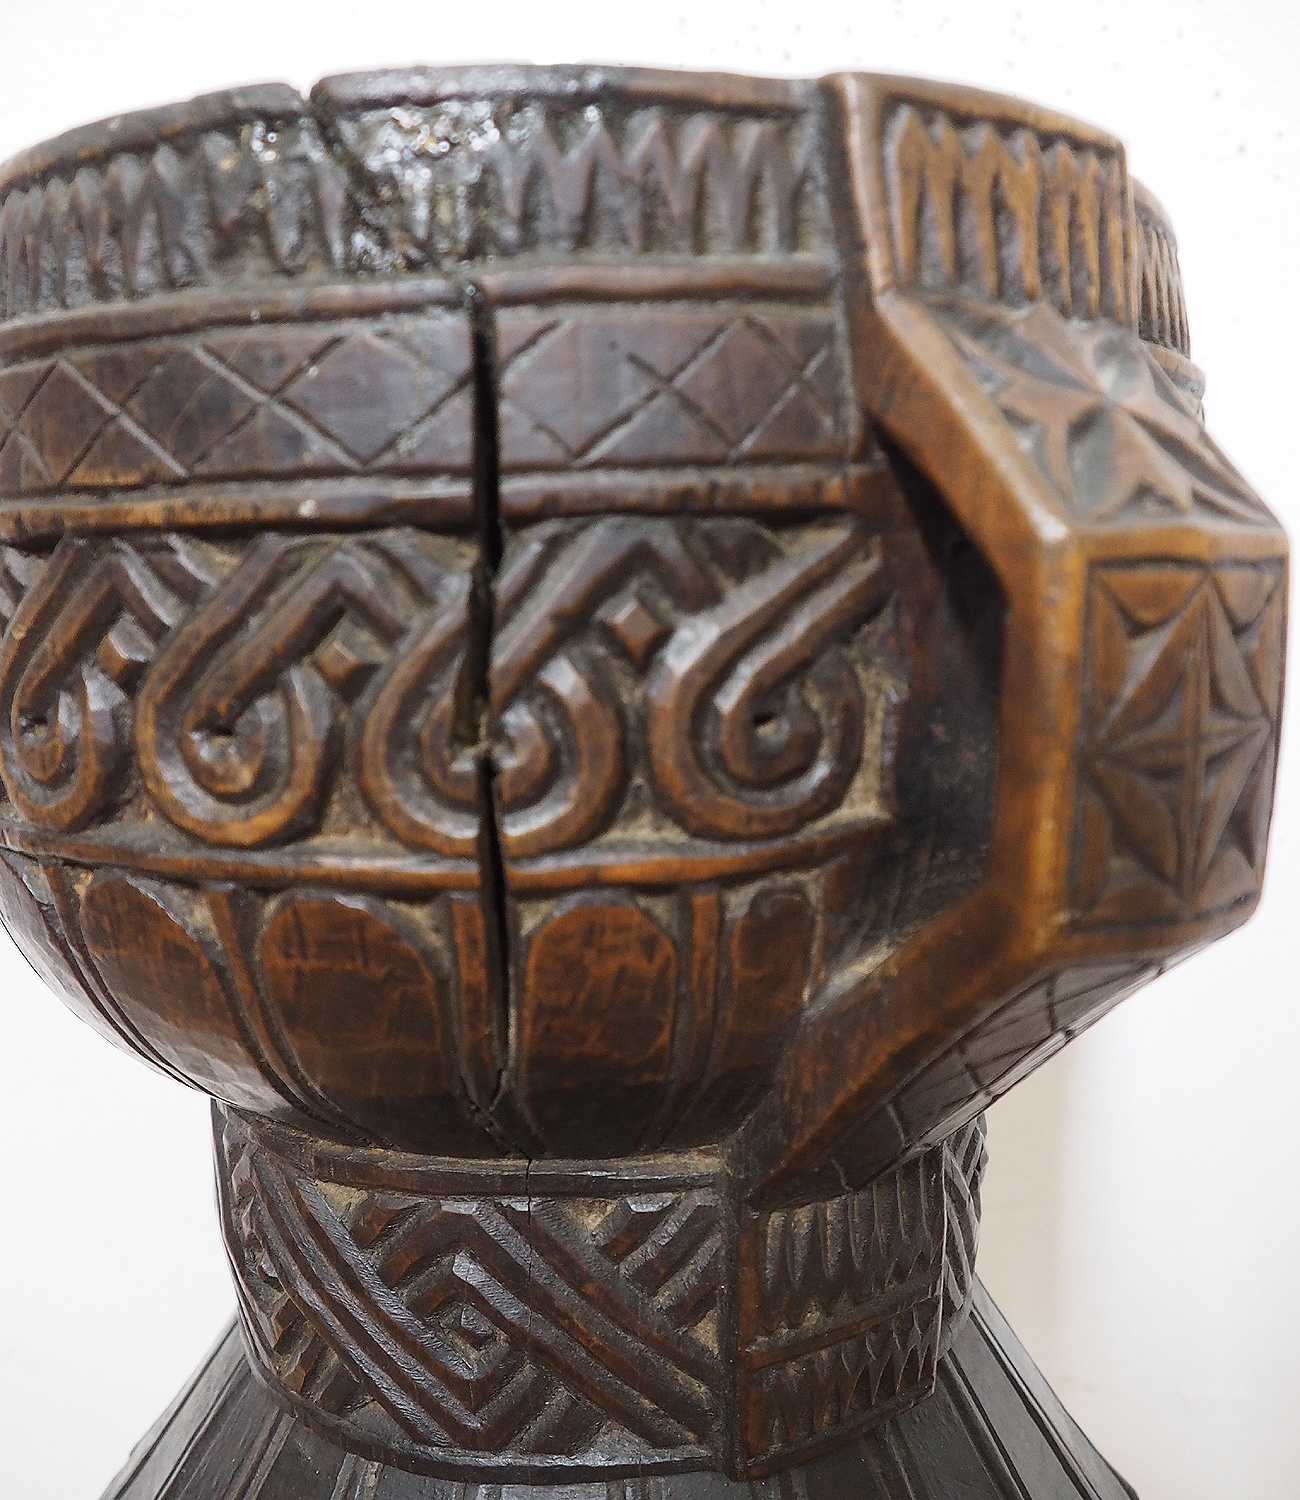 ANTIQUE NURISTANI WOODEN MORTAR  AND PESTLE No: ULM/A